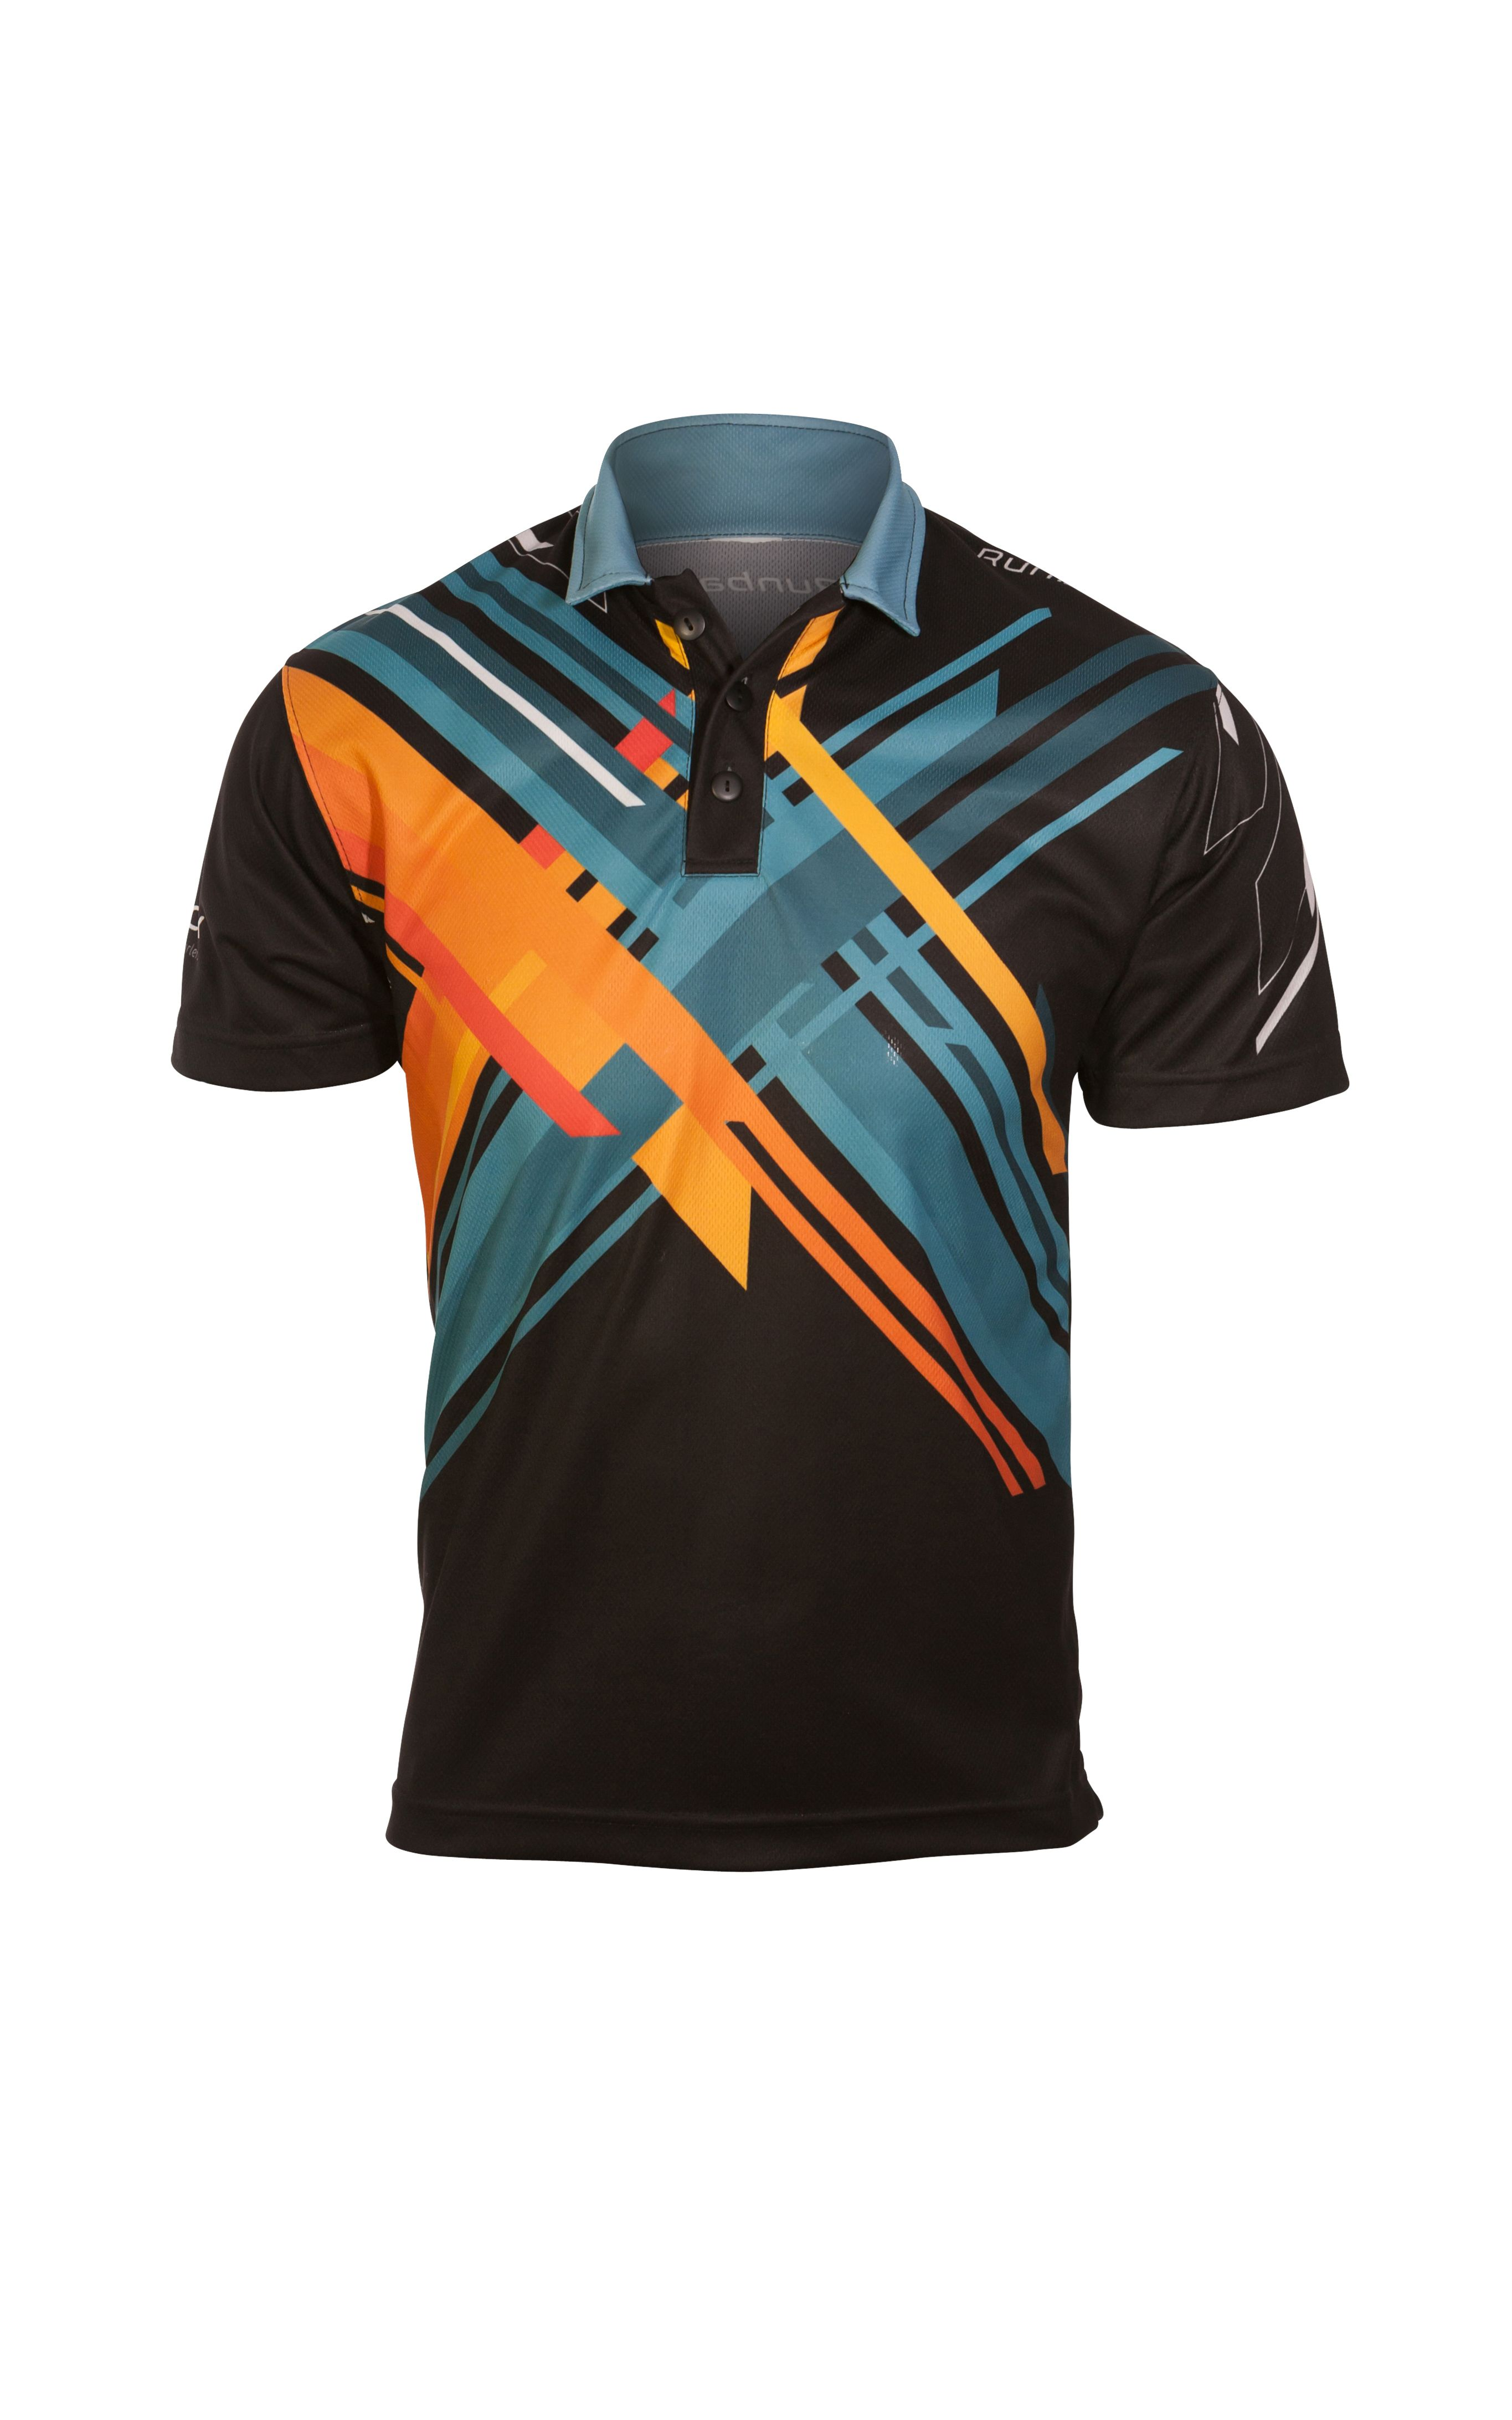 Men S Polo Shirt This Item Can Be Completely Customized